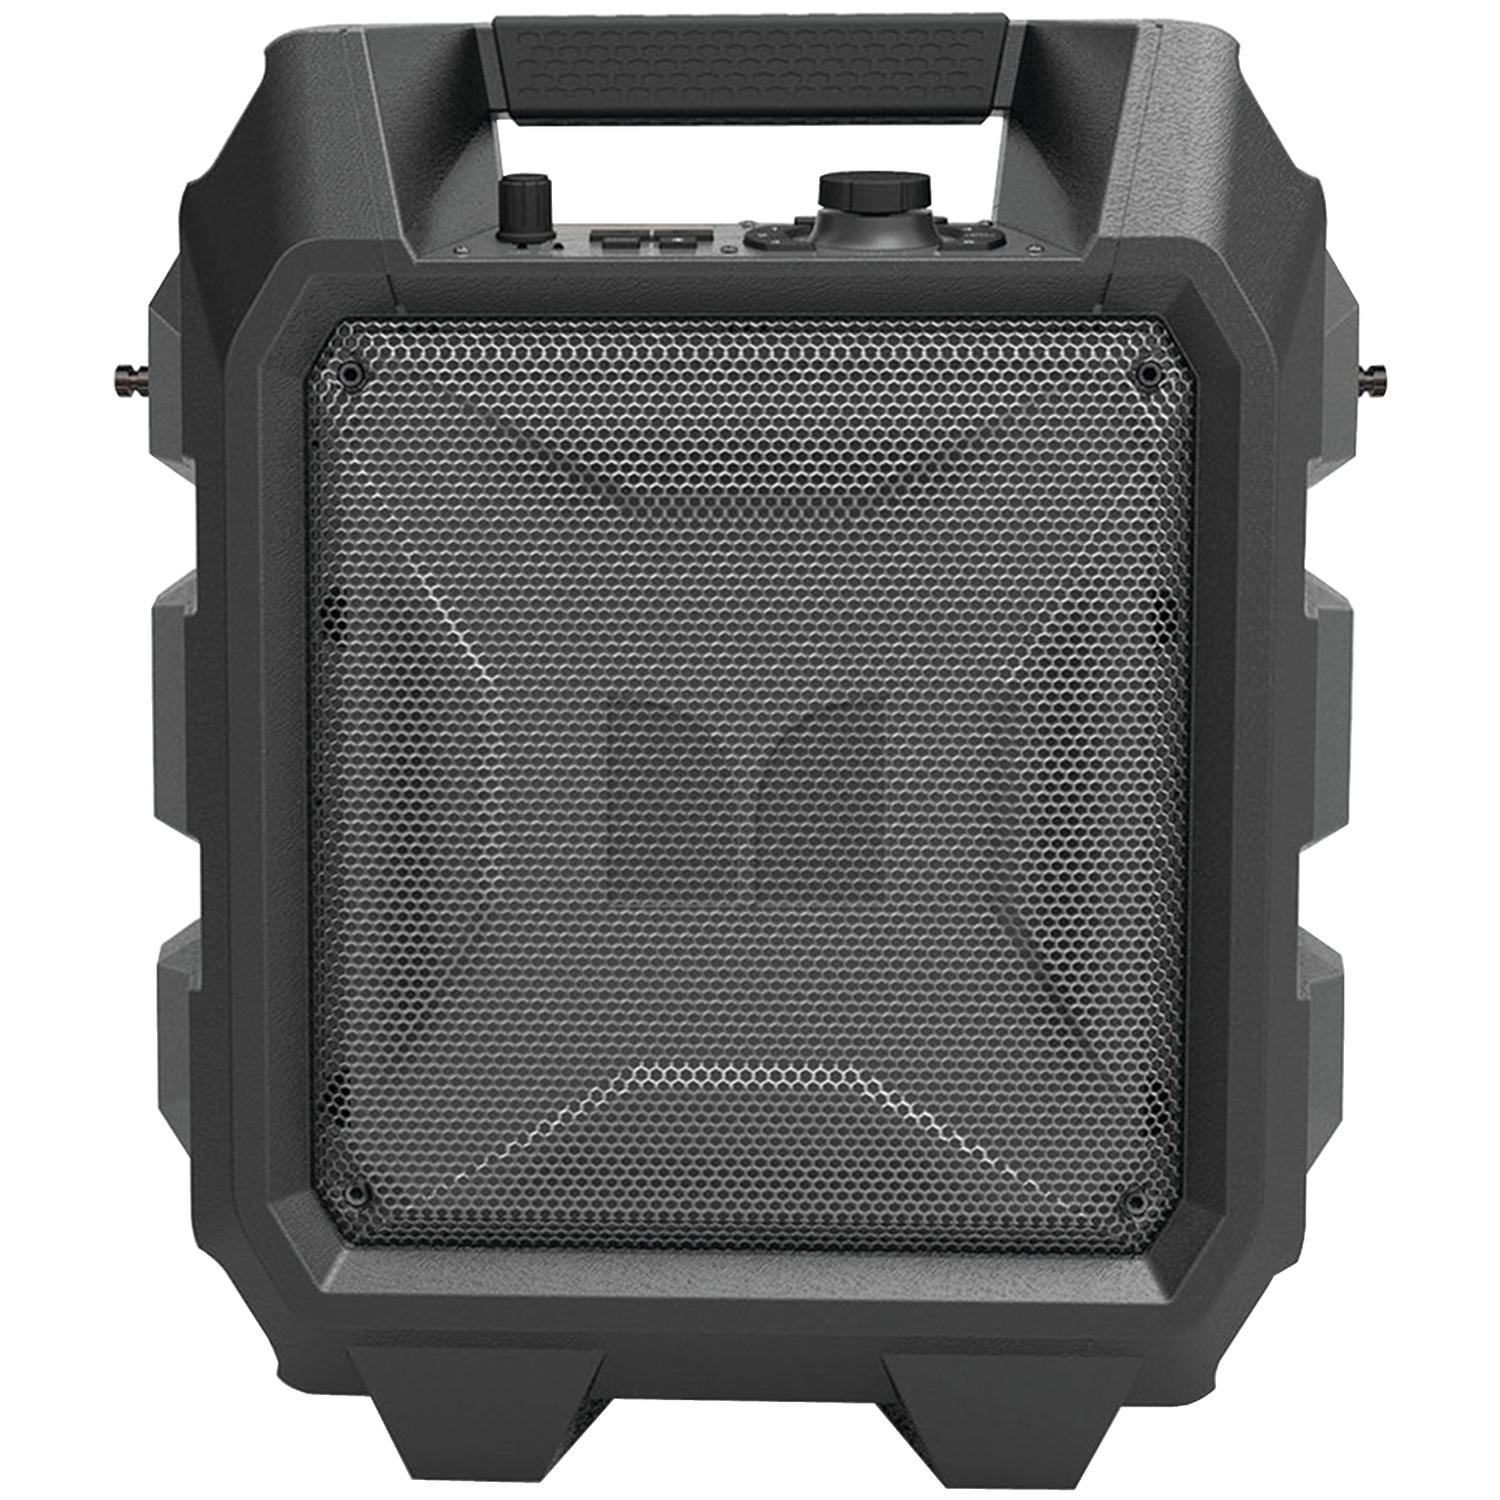 Monster RRMIN Rockin' Roller Mini Portable Indoor/Outdoor Bluetooth Speaker